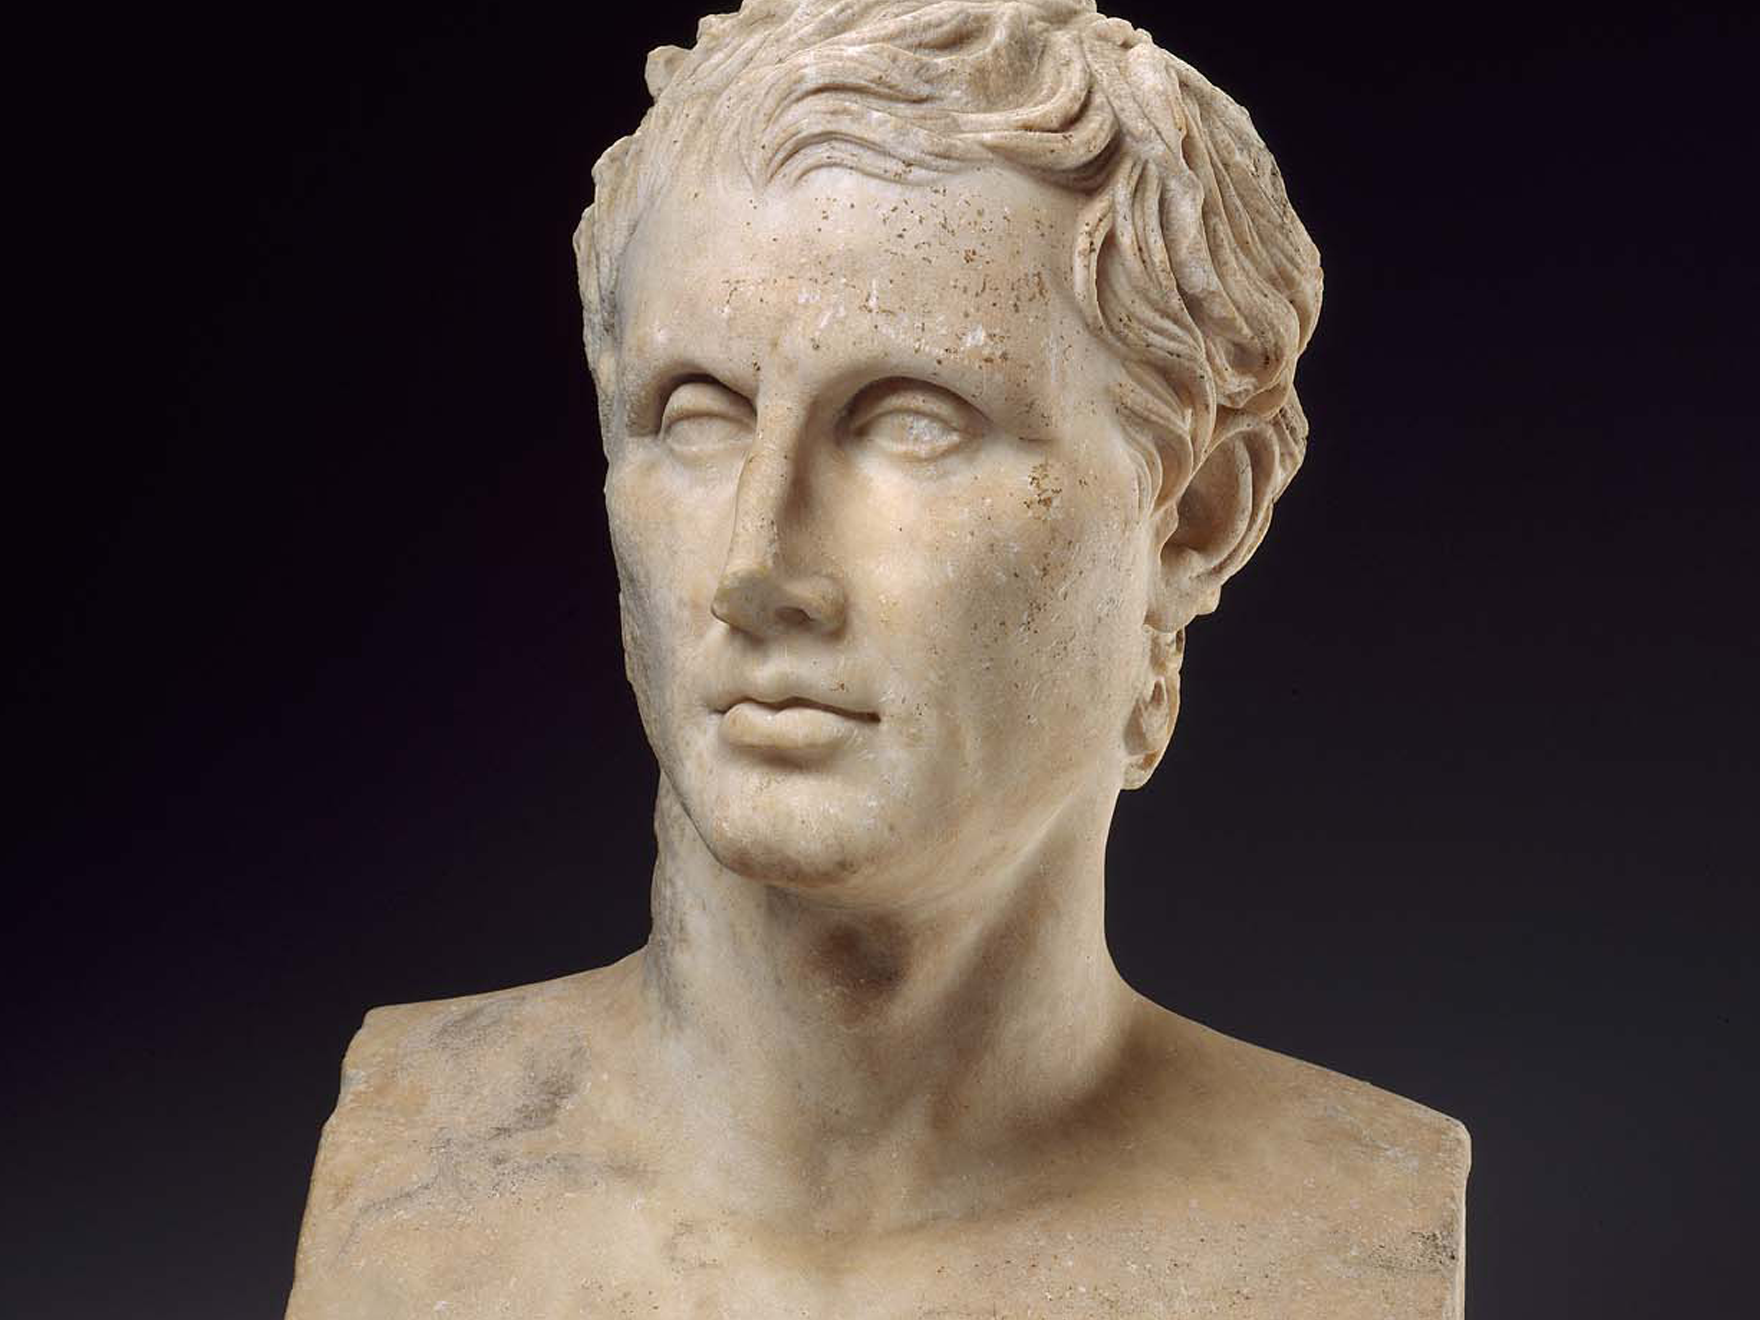 Herm-bust of Menander, Roman, Imperial Period, Late 1st century BC or early 1st century AD